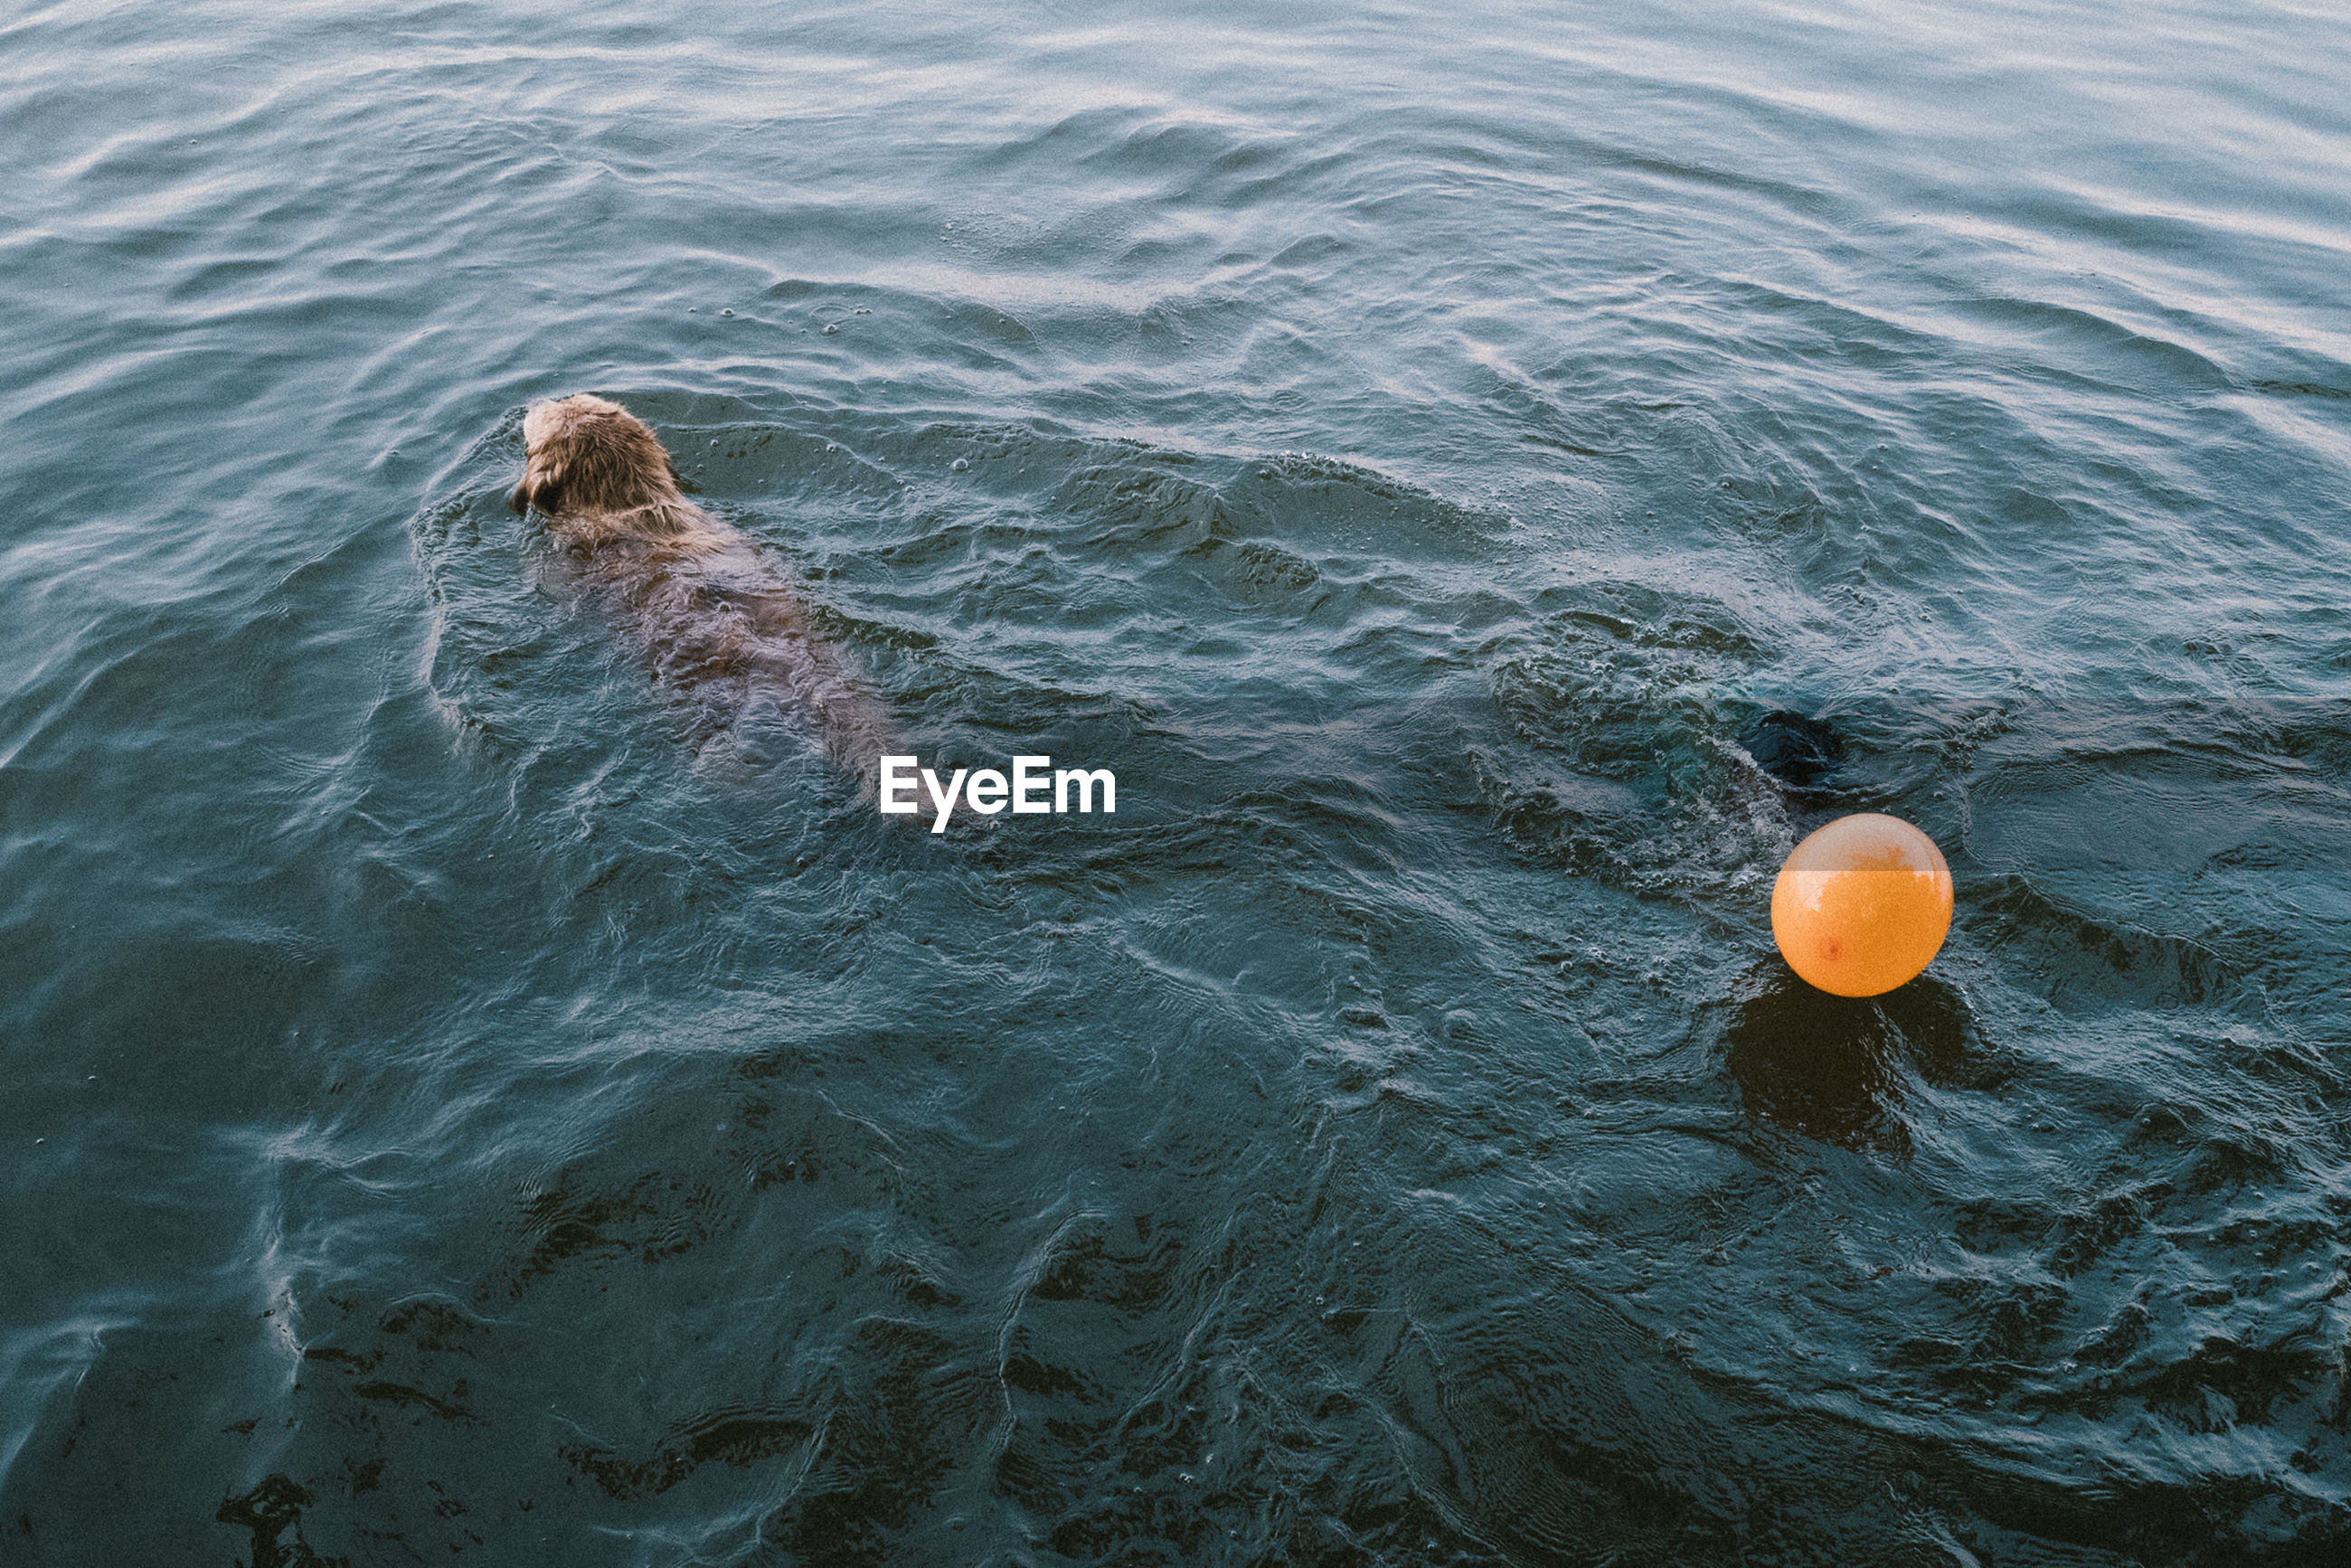 High angle view of dog and balloon in sea